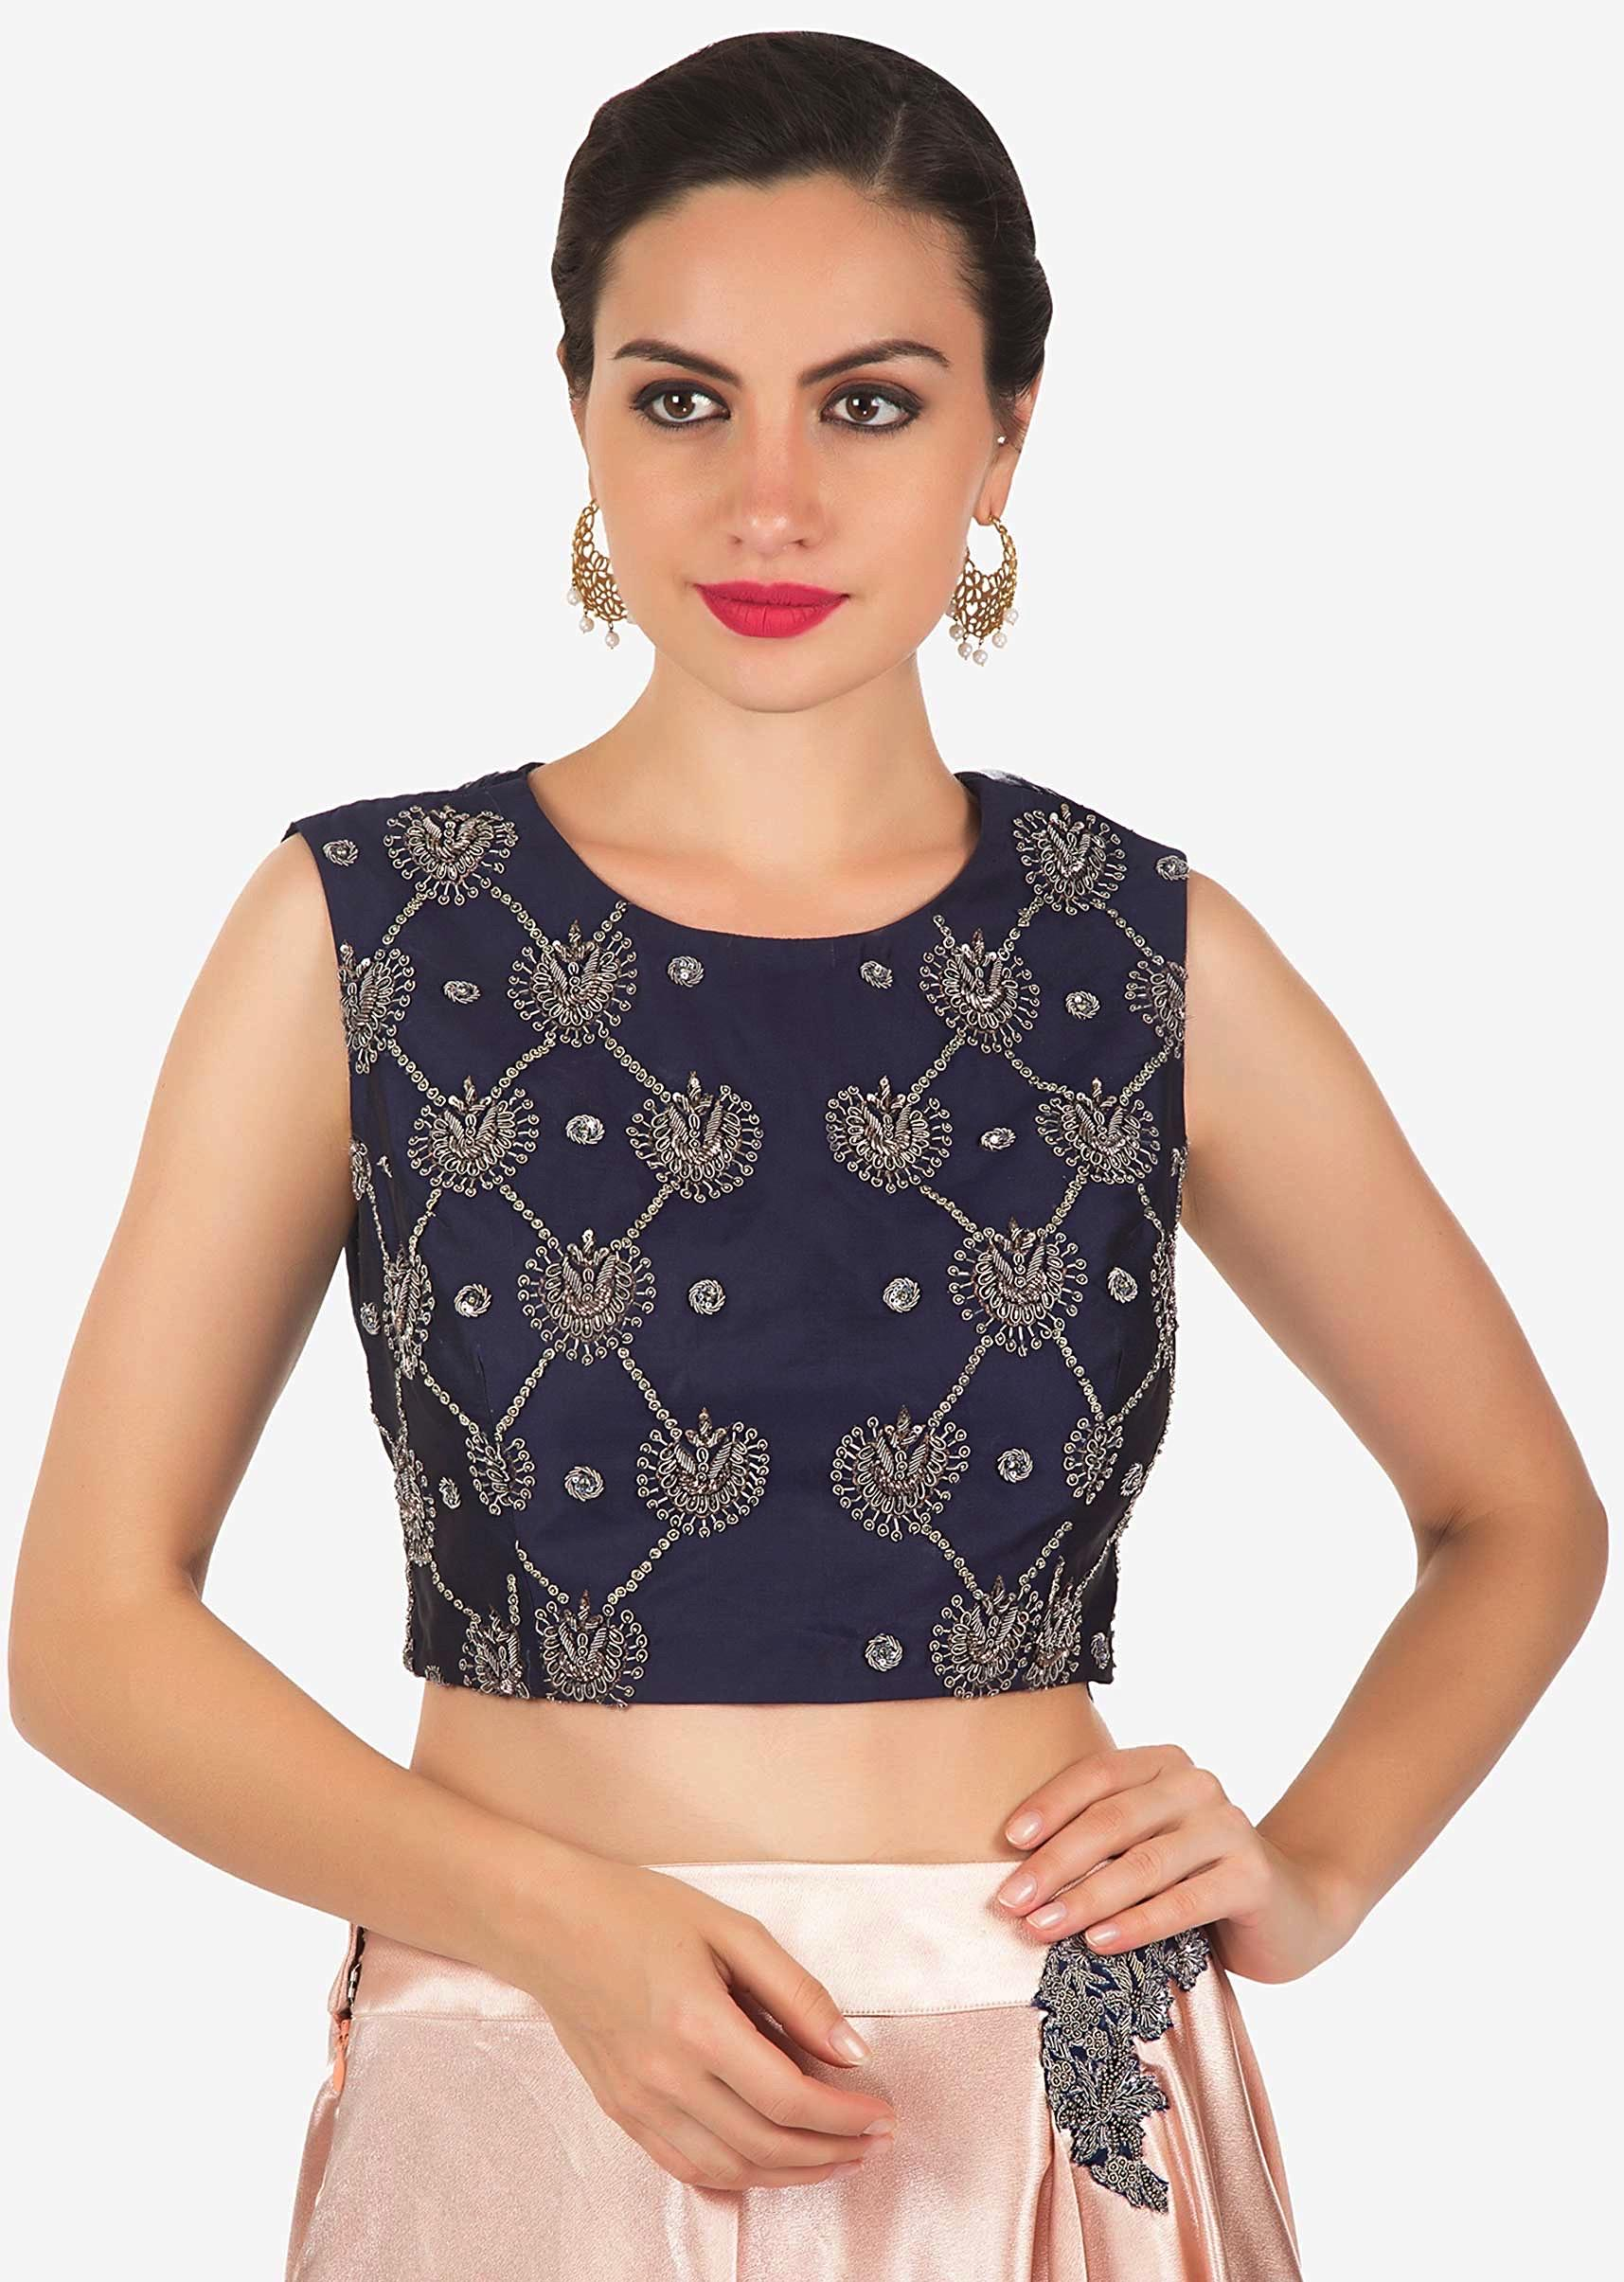 68fe80defffa9 Rose gold lehenga saree with navy blue blouse in zardosi and cut dana  embroidery only on Kalki